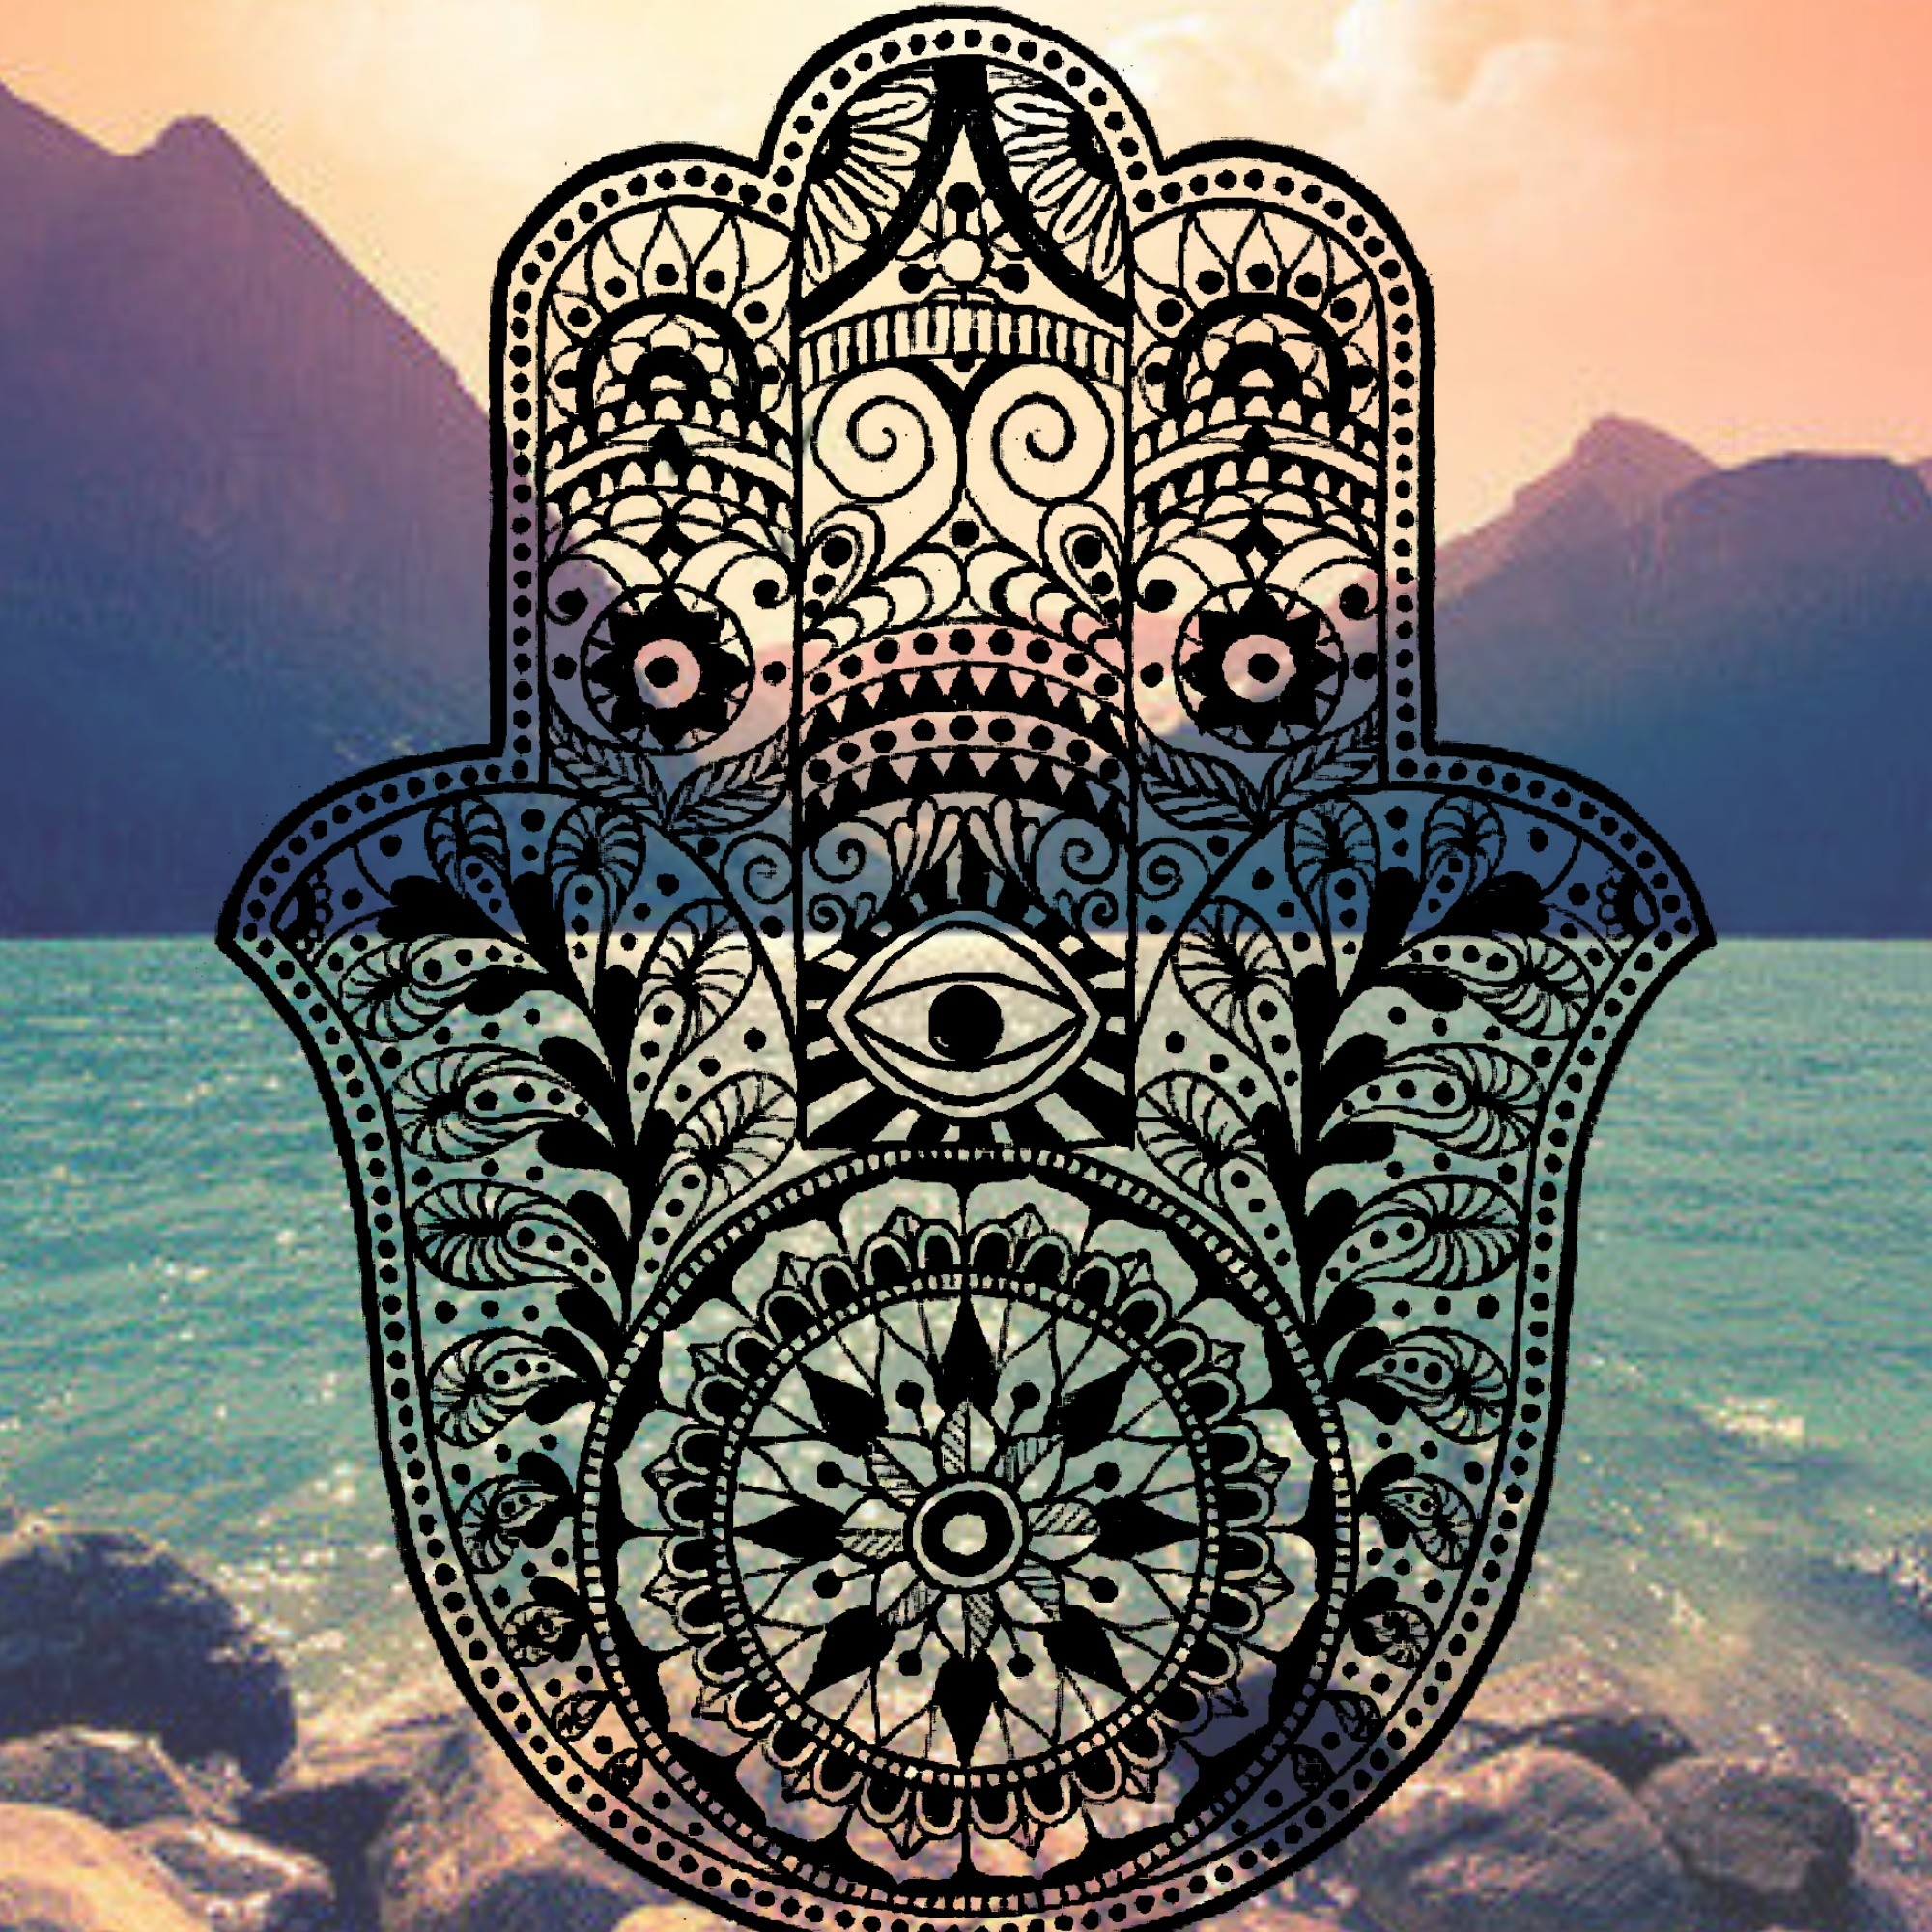 2000x2000 Hamsa iPhone Background mountain ocean tumblr evil eye hams hand henna